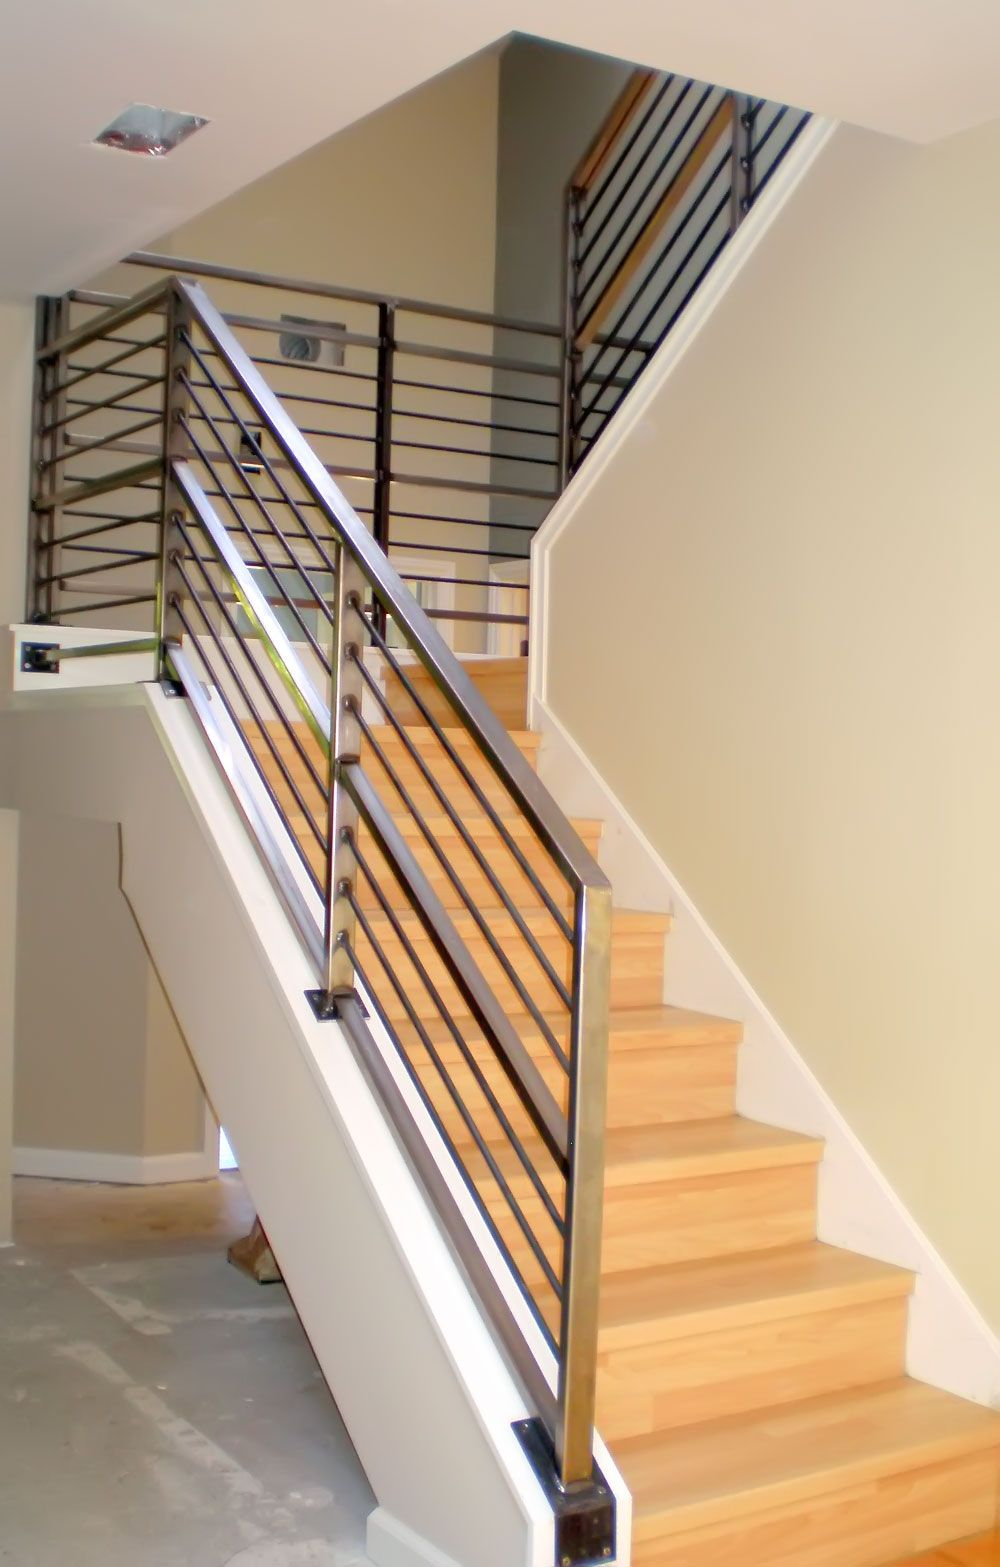 Charming Stair Railing Design Ideas To Beautify Your Rooms Fancy   Steel Hand Railing For Stairs   Rustic   Exterior   Backyard   Low Cost   Decorative